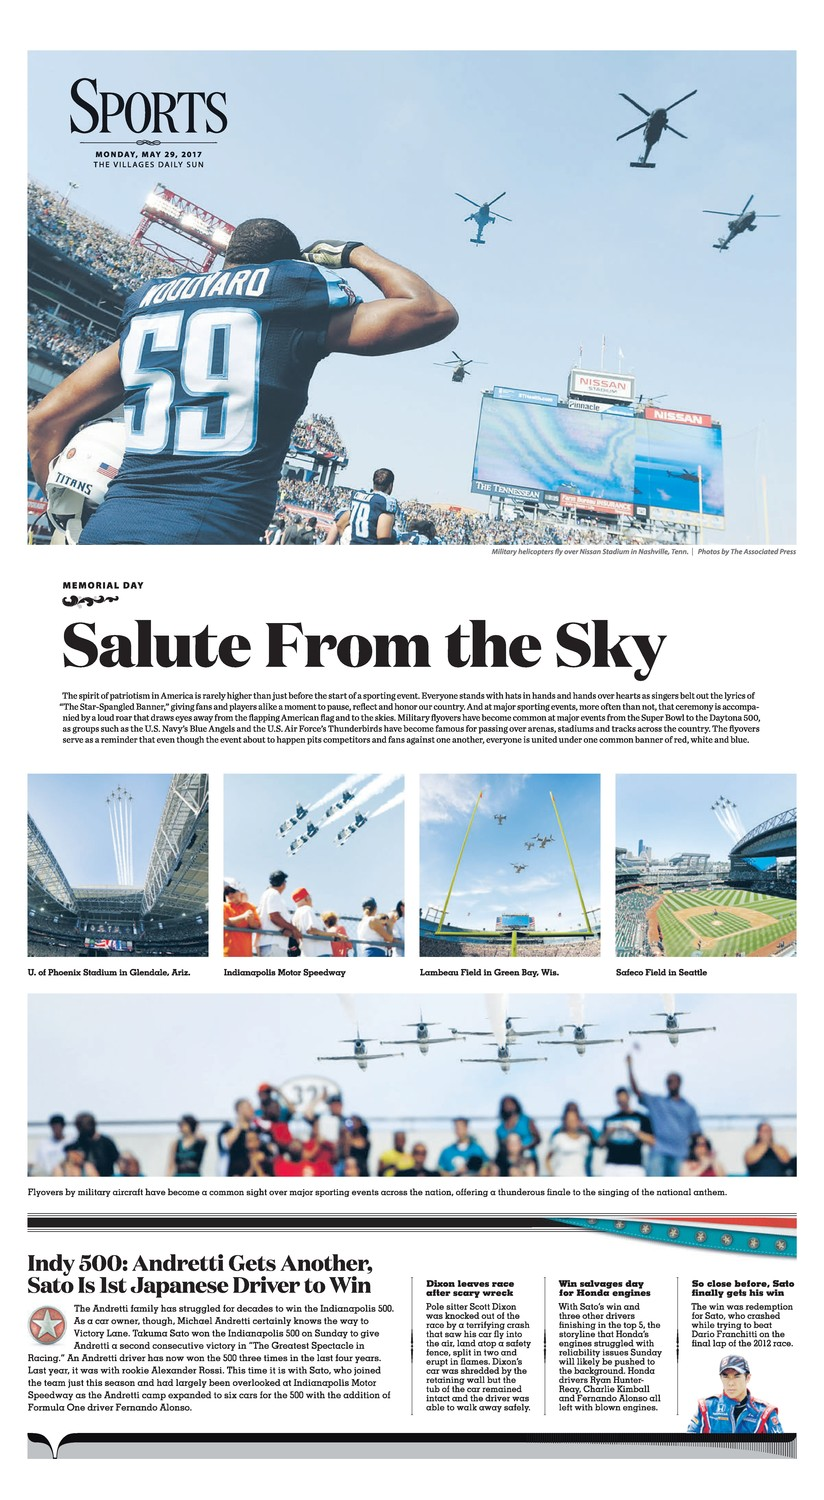 Photographer Adam Rogers took first place for these shots for a layout on a Memorial Day football game and flyover that appeared in The Villages Daily Sun.